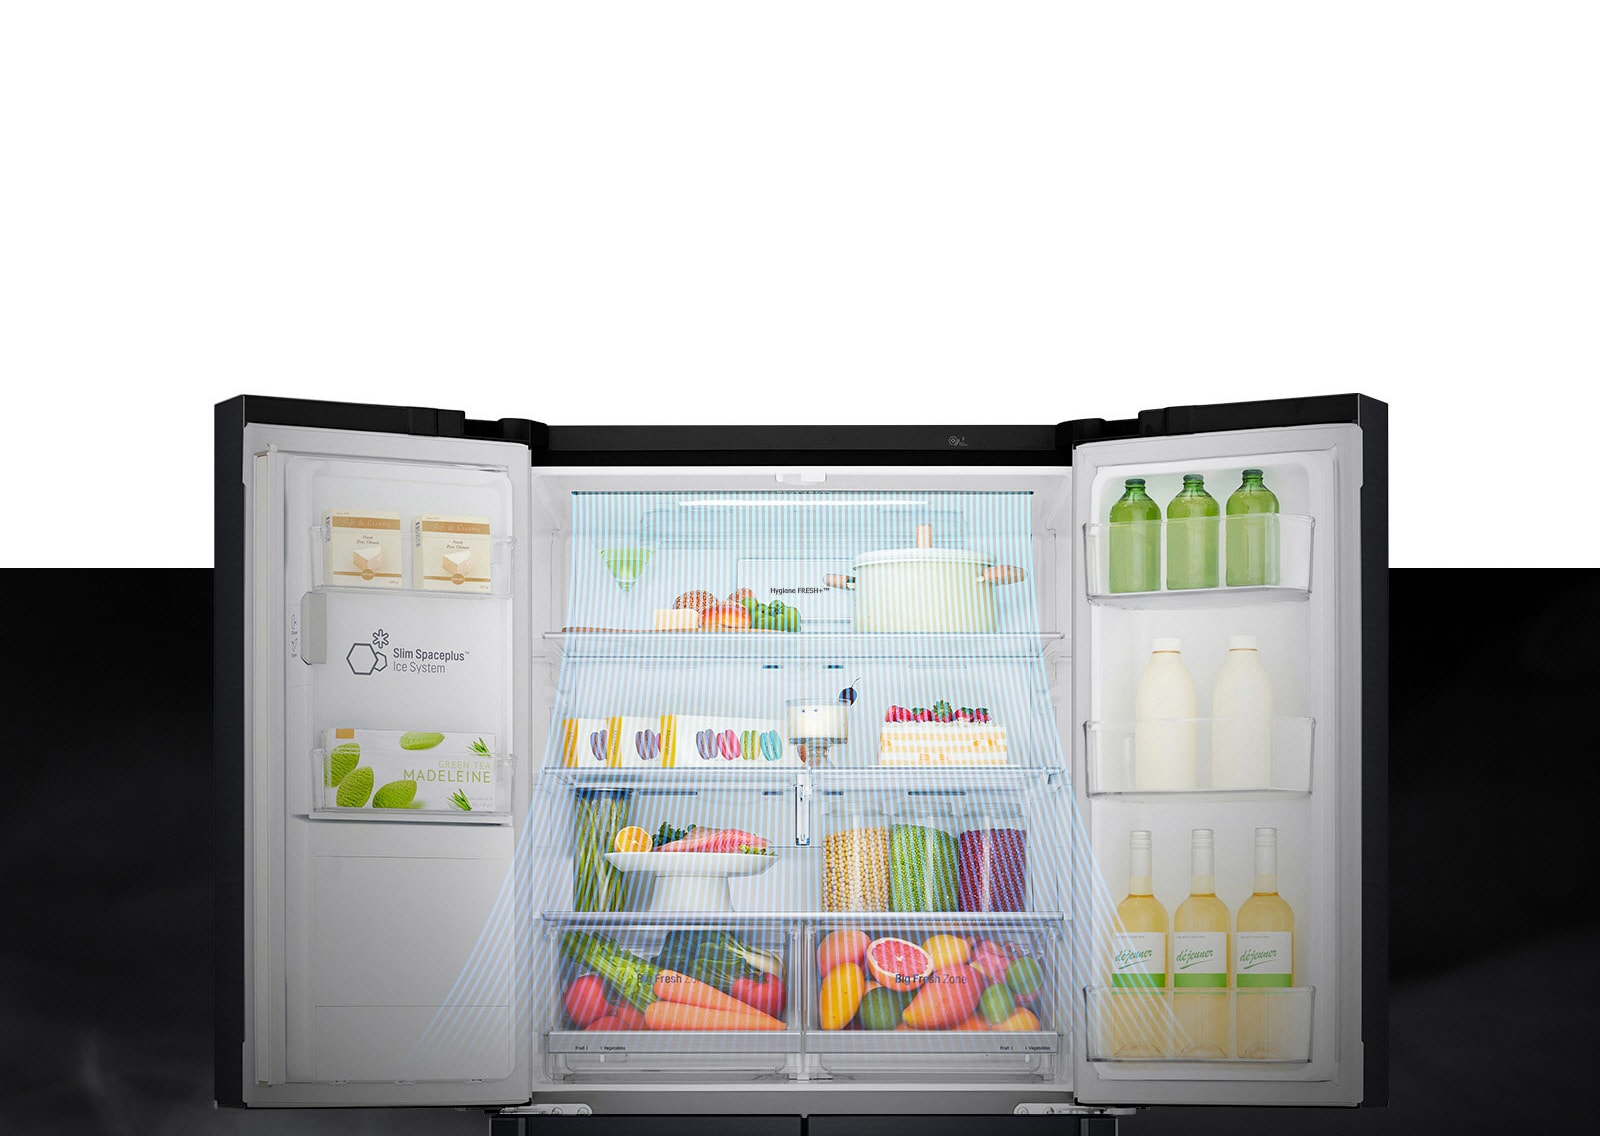 lg french door fridge helps maintain temperature to keep your food items fresh.